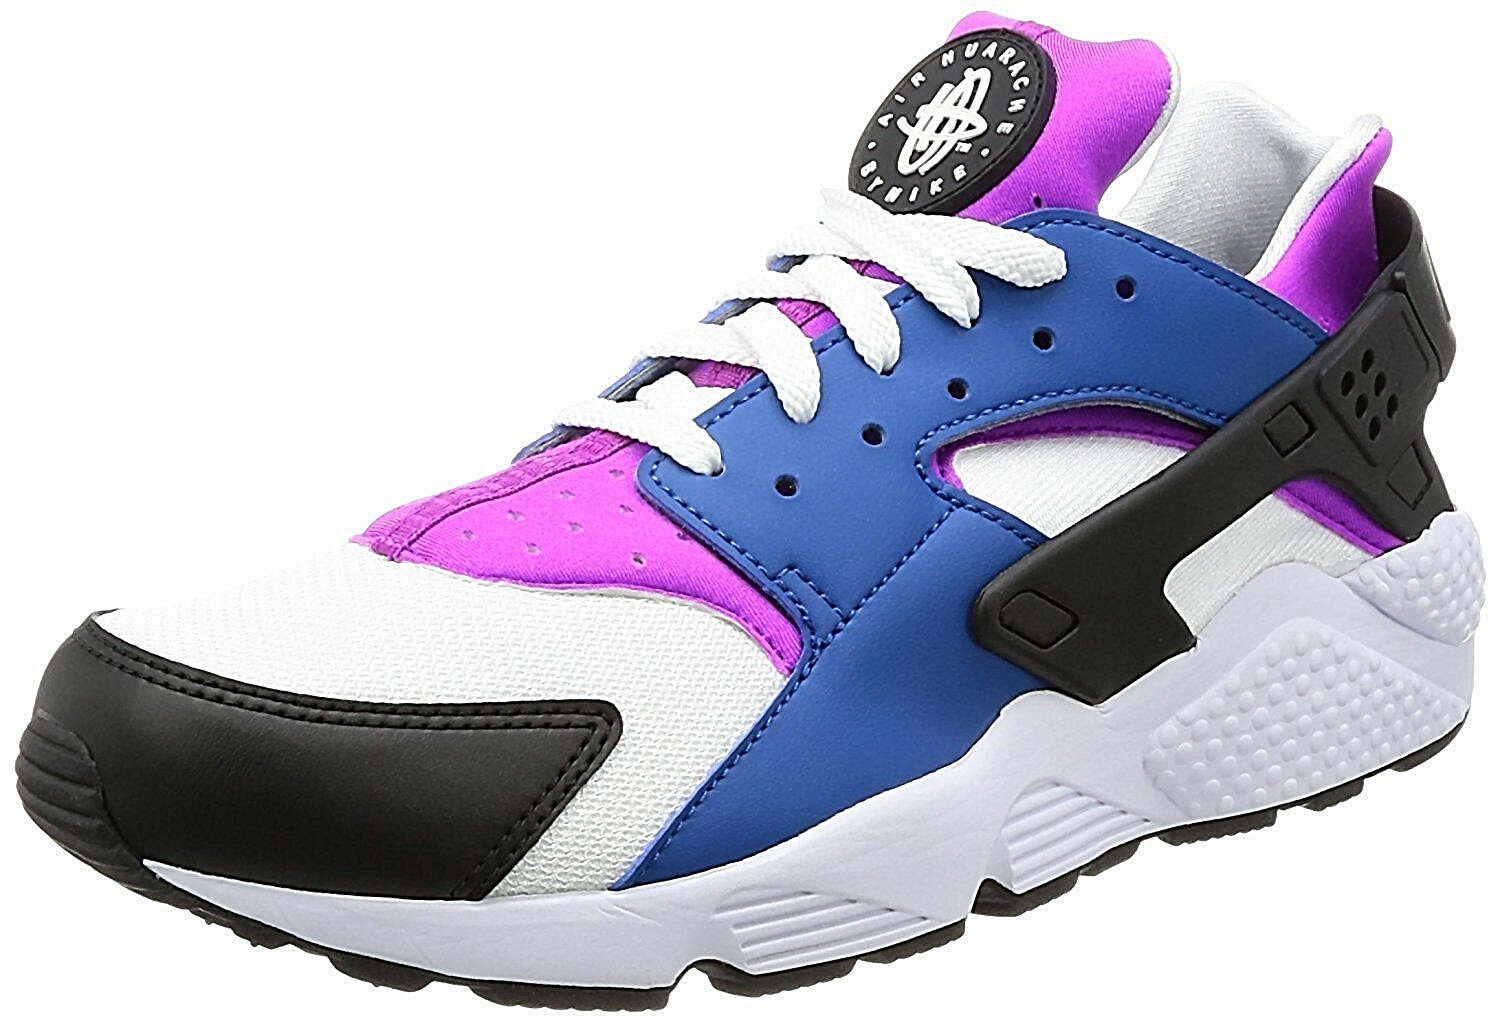 NIKE Air Huarache Run 8 Running Training Chaussures Hommes 8 Run Bleu Jay/Hyper Violet/ Noir fdf7d1